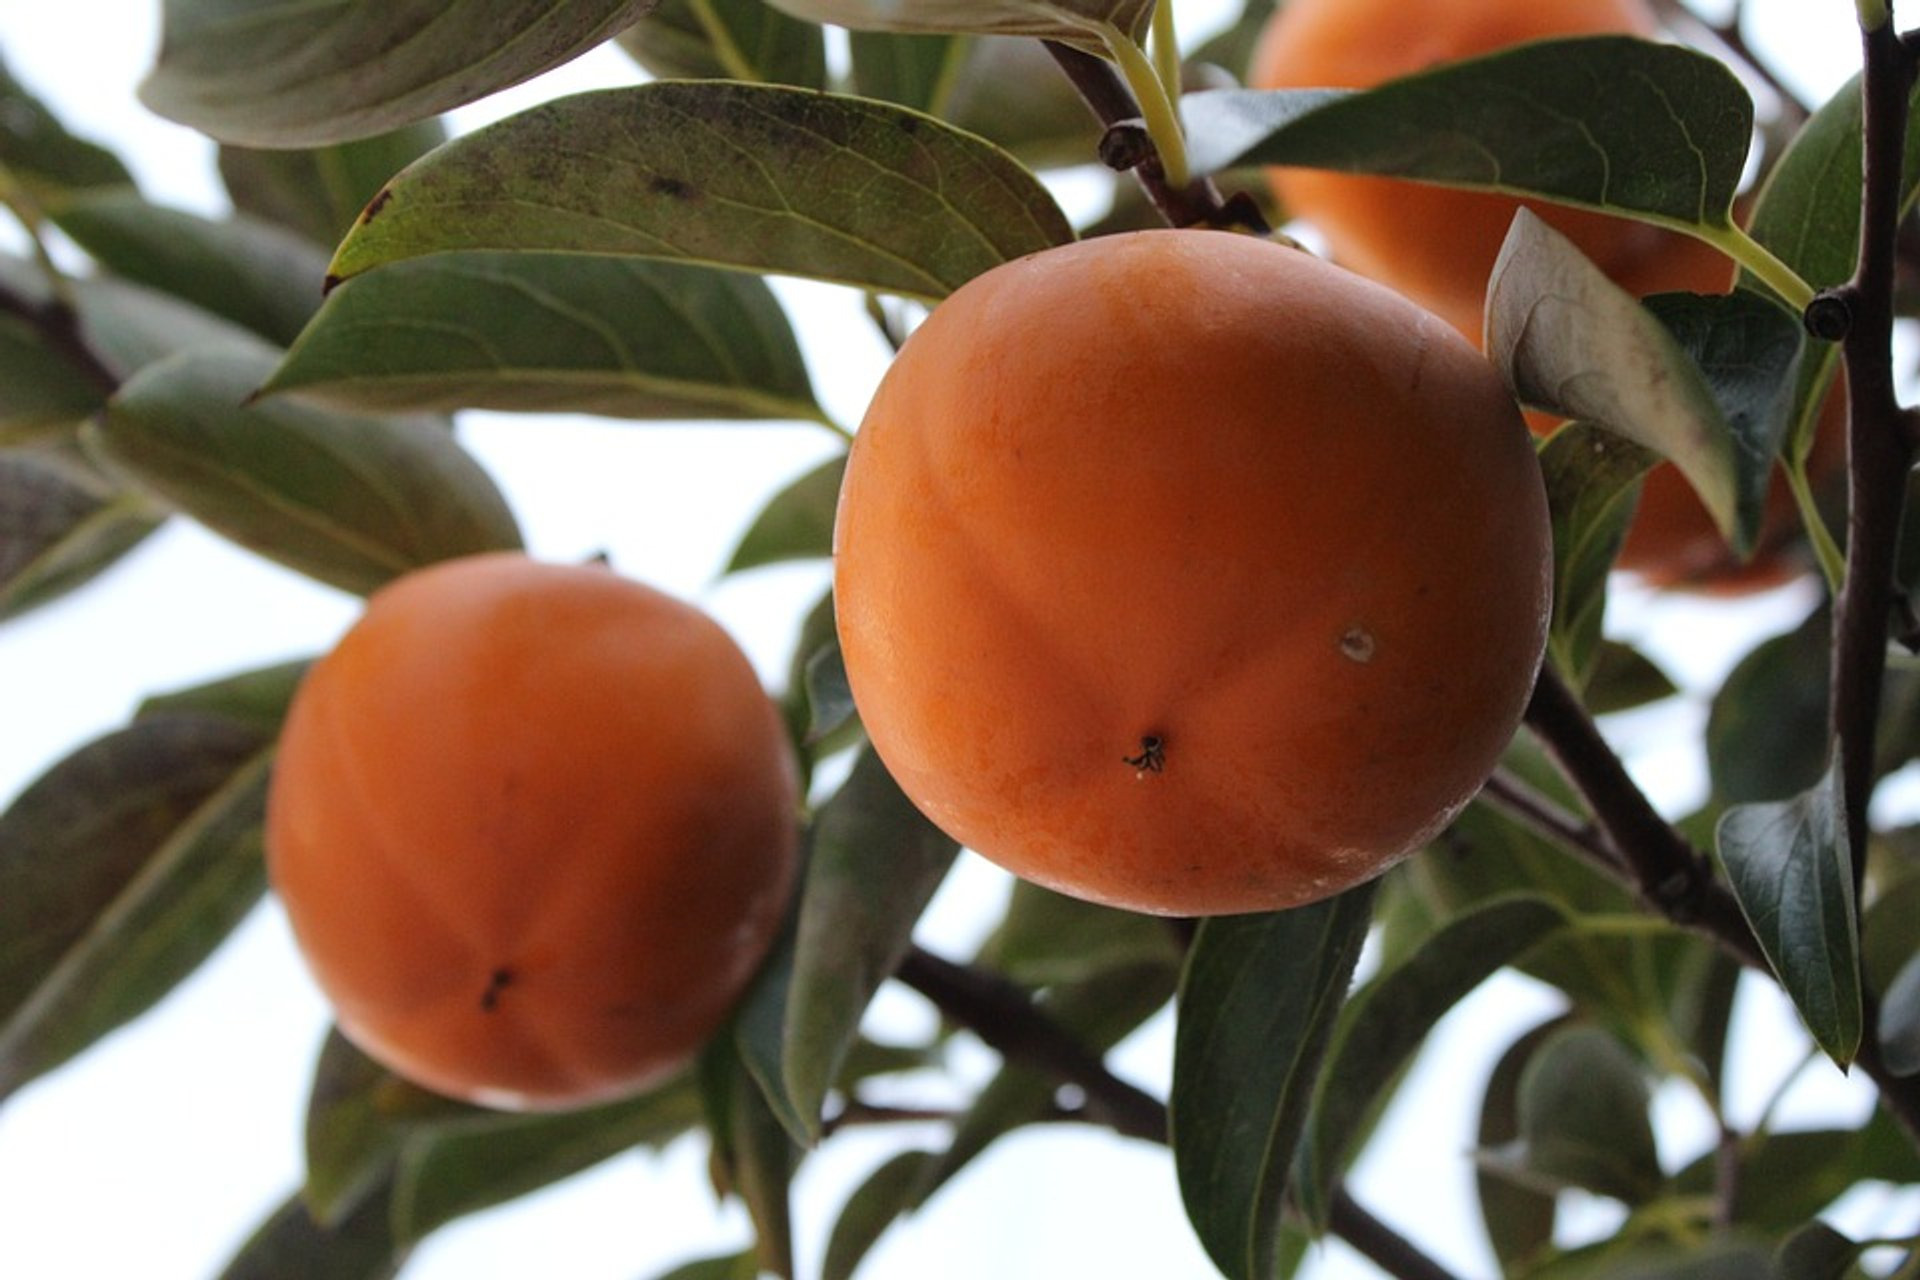 Persimmon Harvest and Gotgam Making in South Korea - Best Season